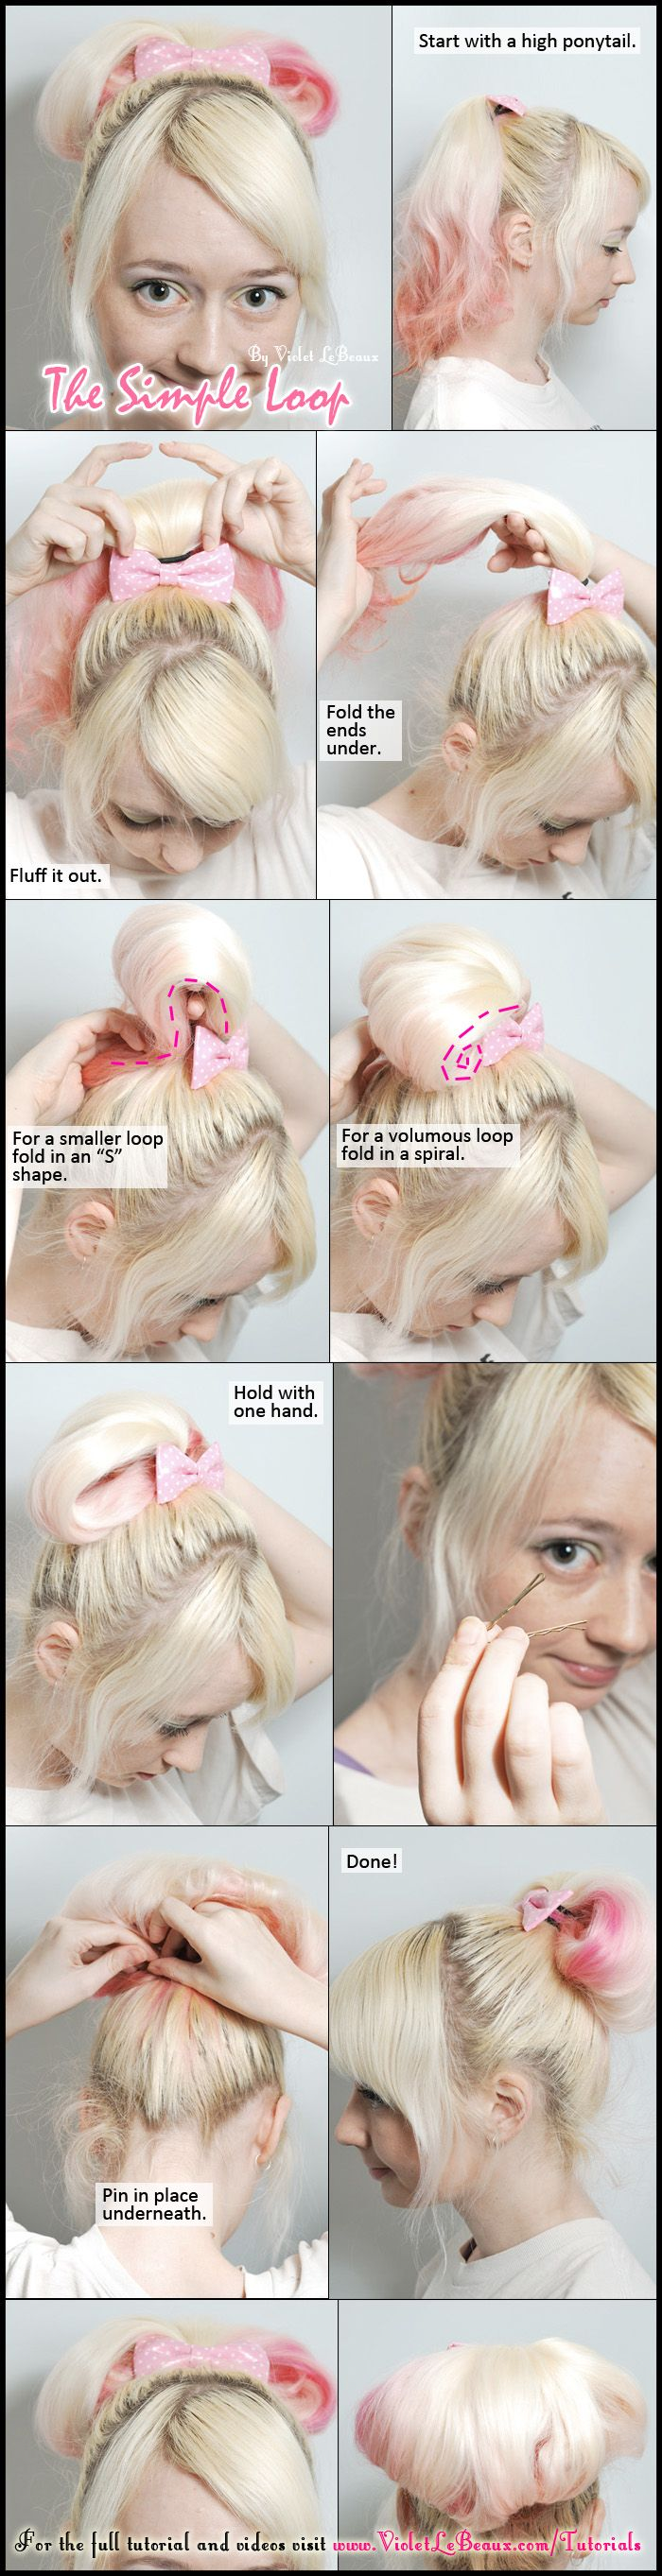 Simple tutorial for a very simple lazy day cute hair style ^_^    Full original post over here with more information:  violetlebeaux.com...